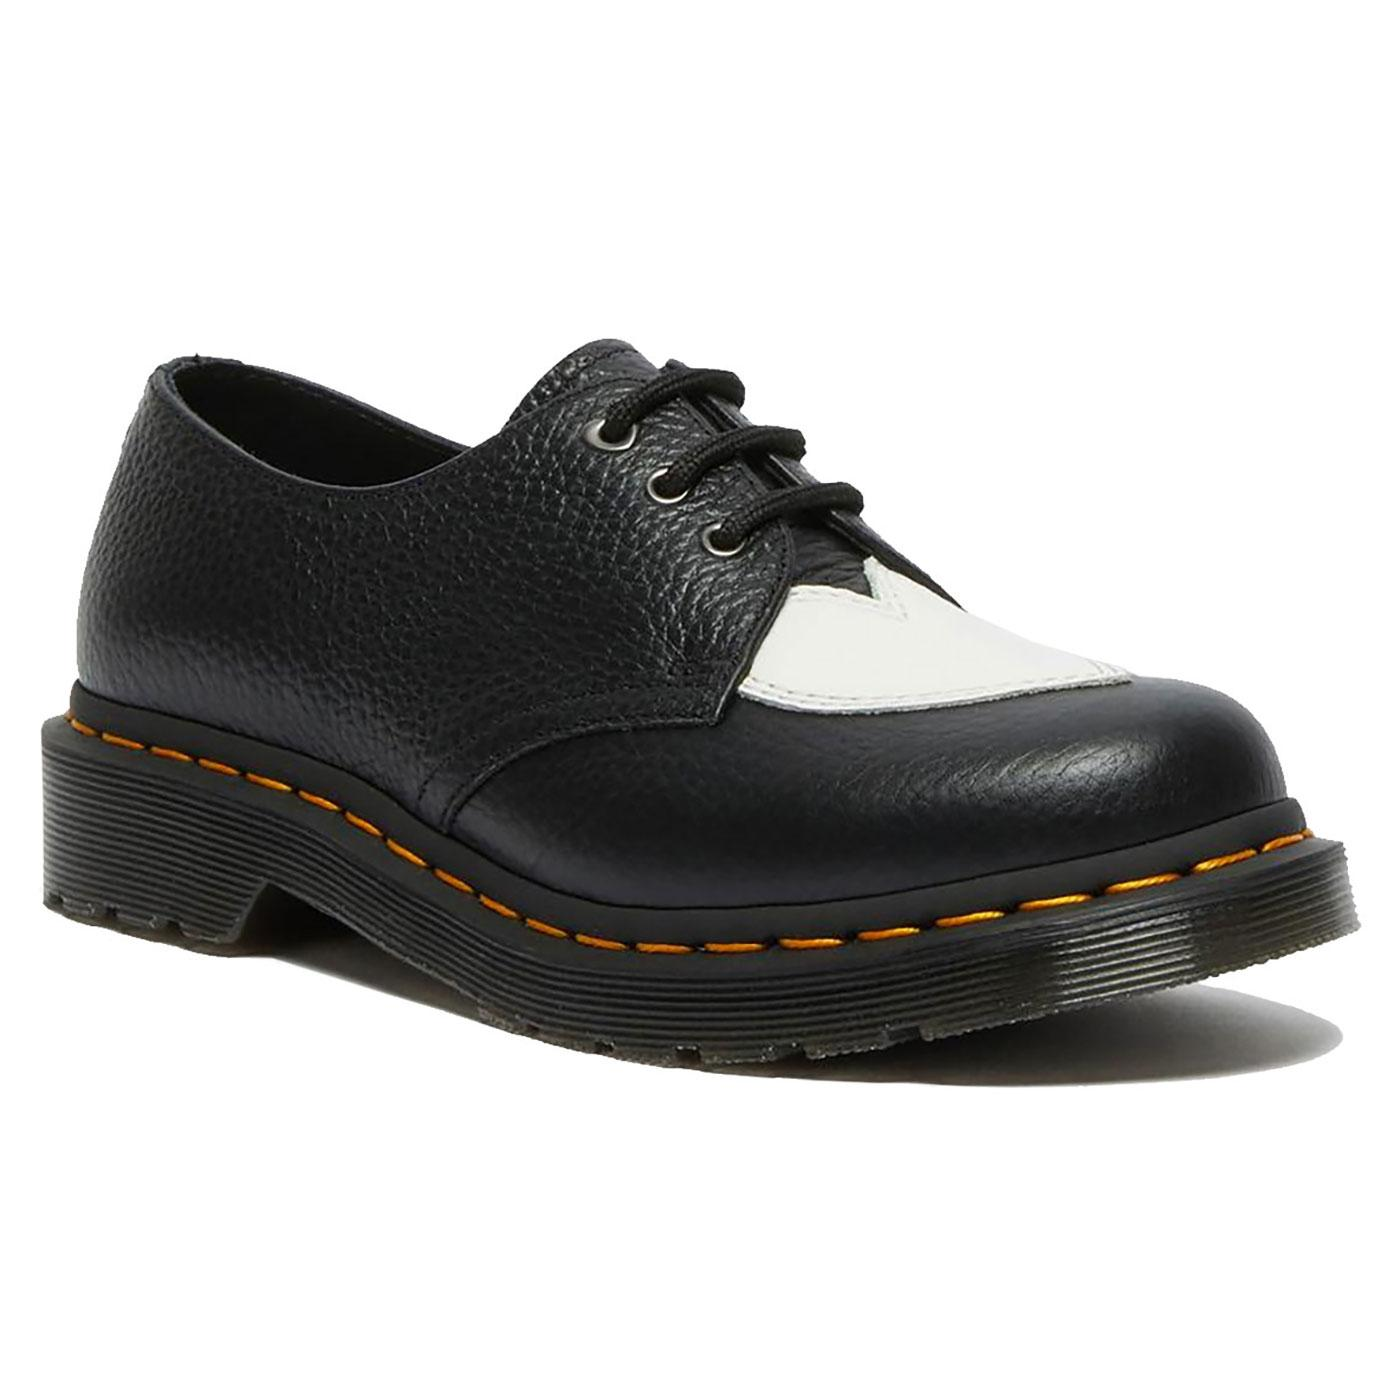 1461 Amore DR MARTENS Heart Patch Oxford Shoes B/W